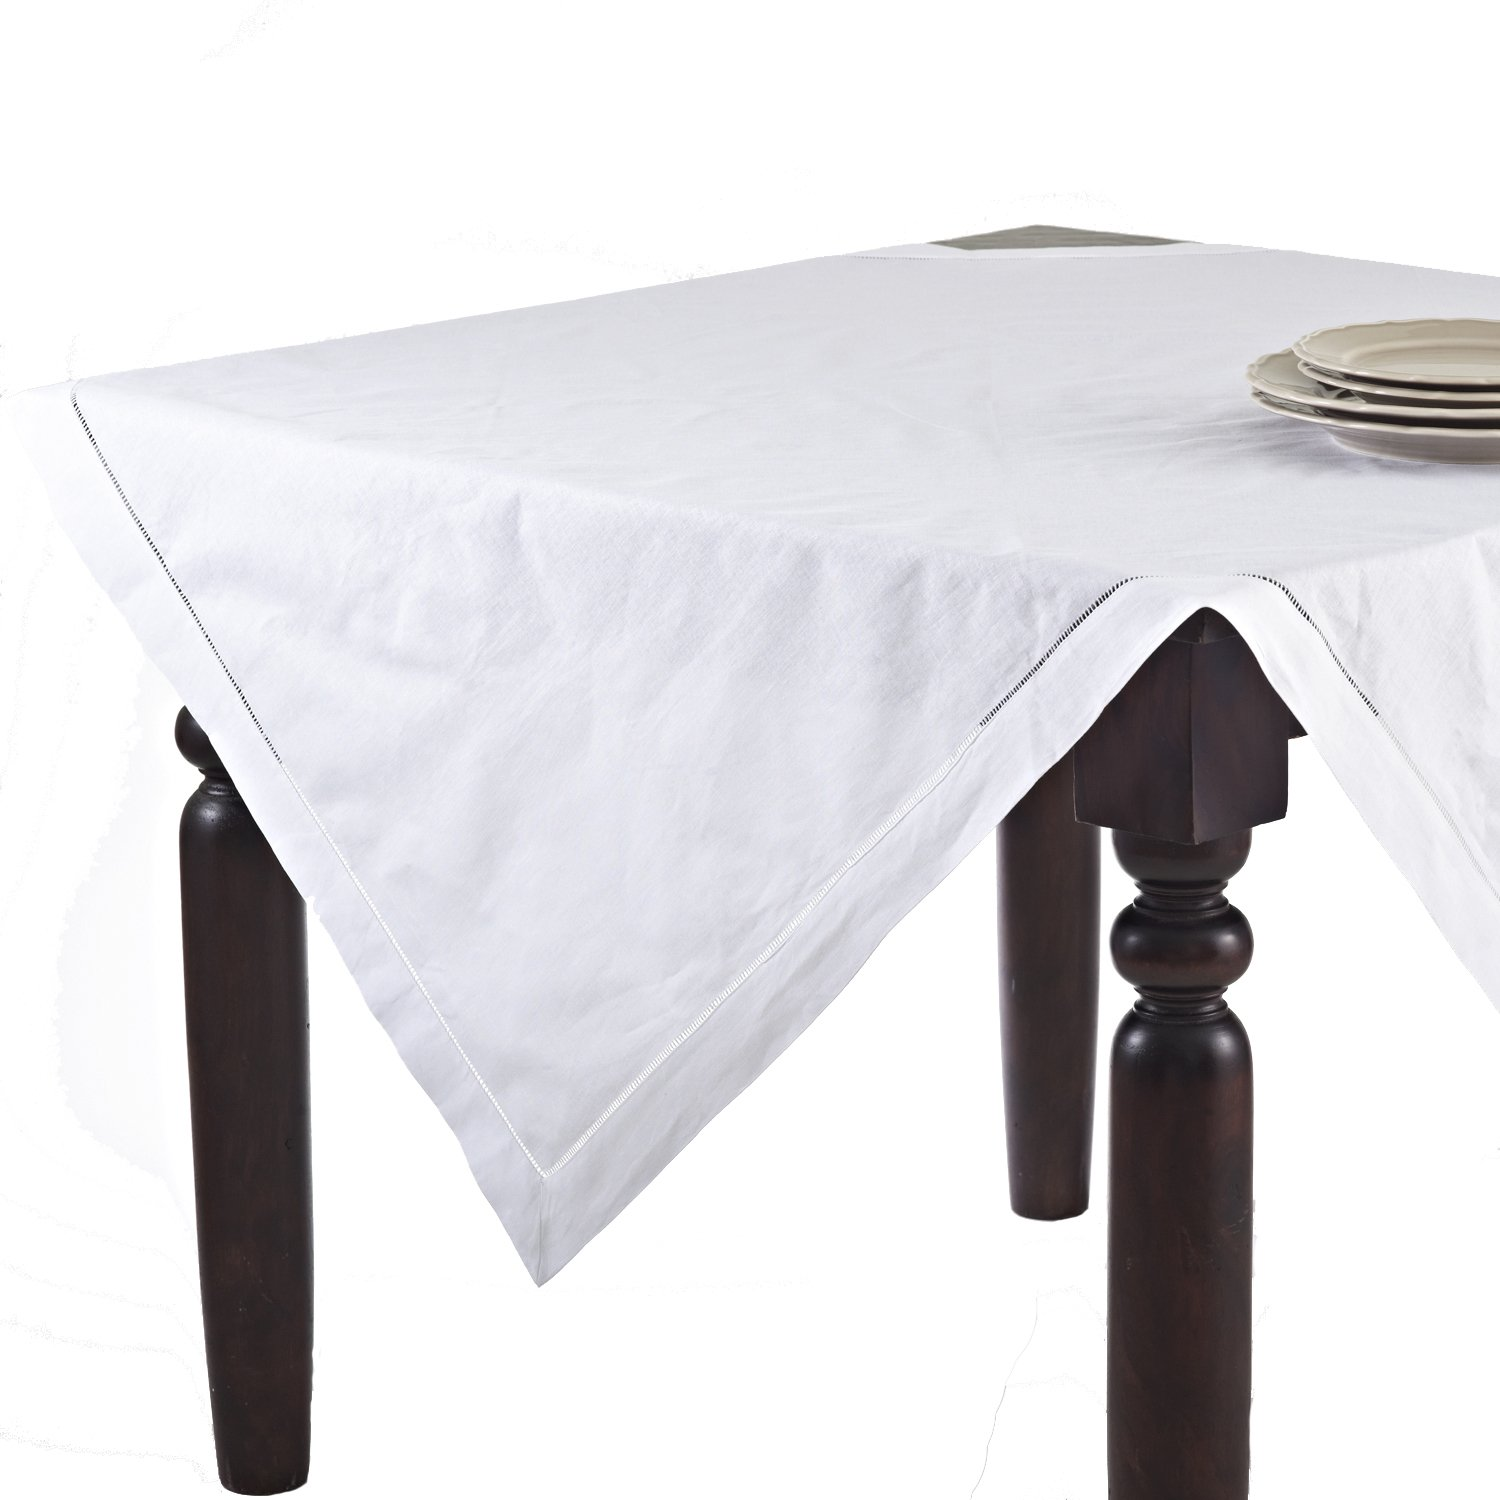 16 x 120, SARO LIFESTYLE 6100 Handmade Classic Hemstitched Design Table Runner 16x120 Oblong White